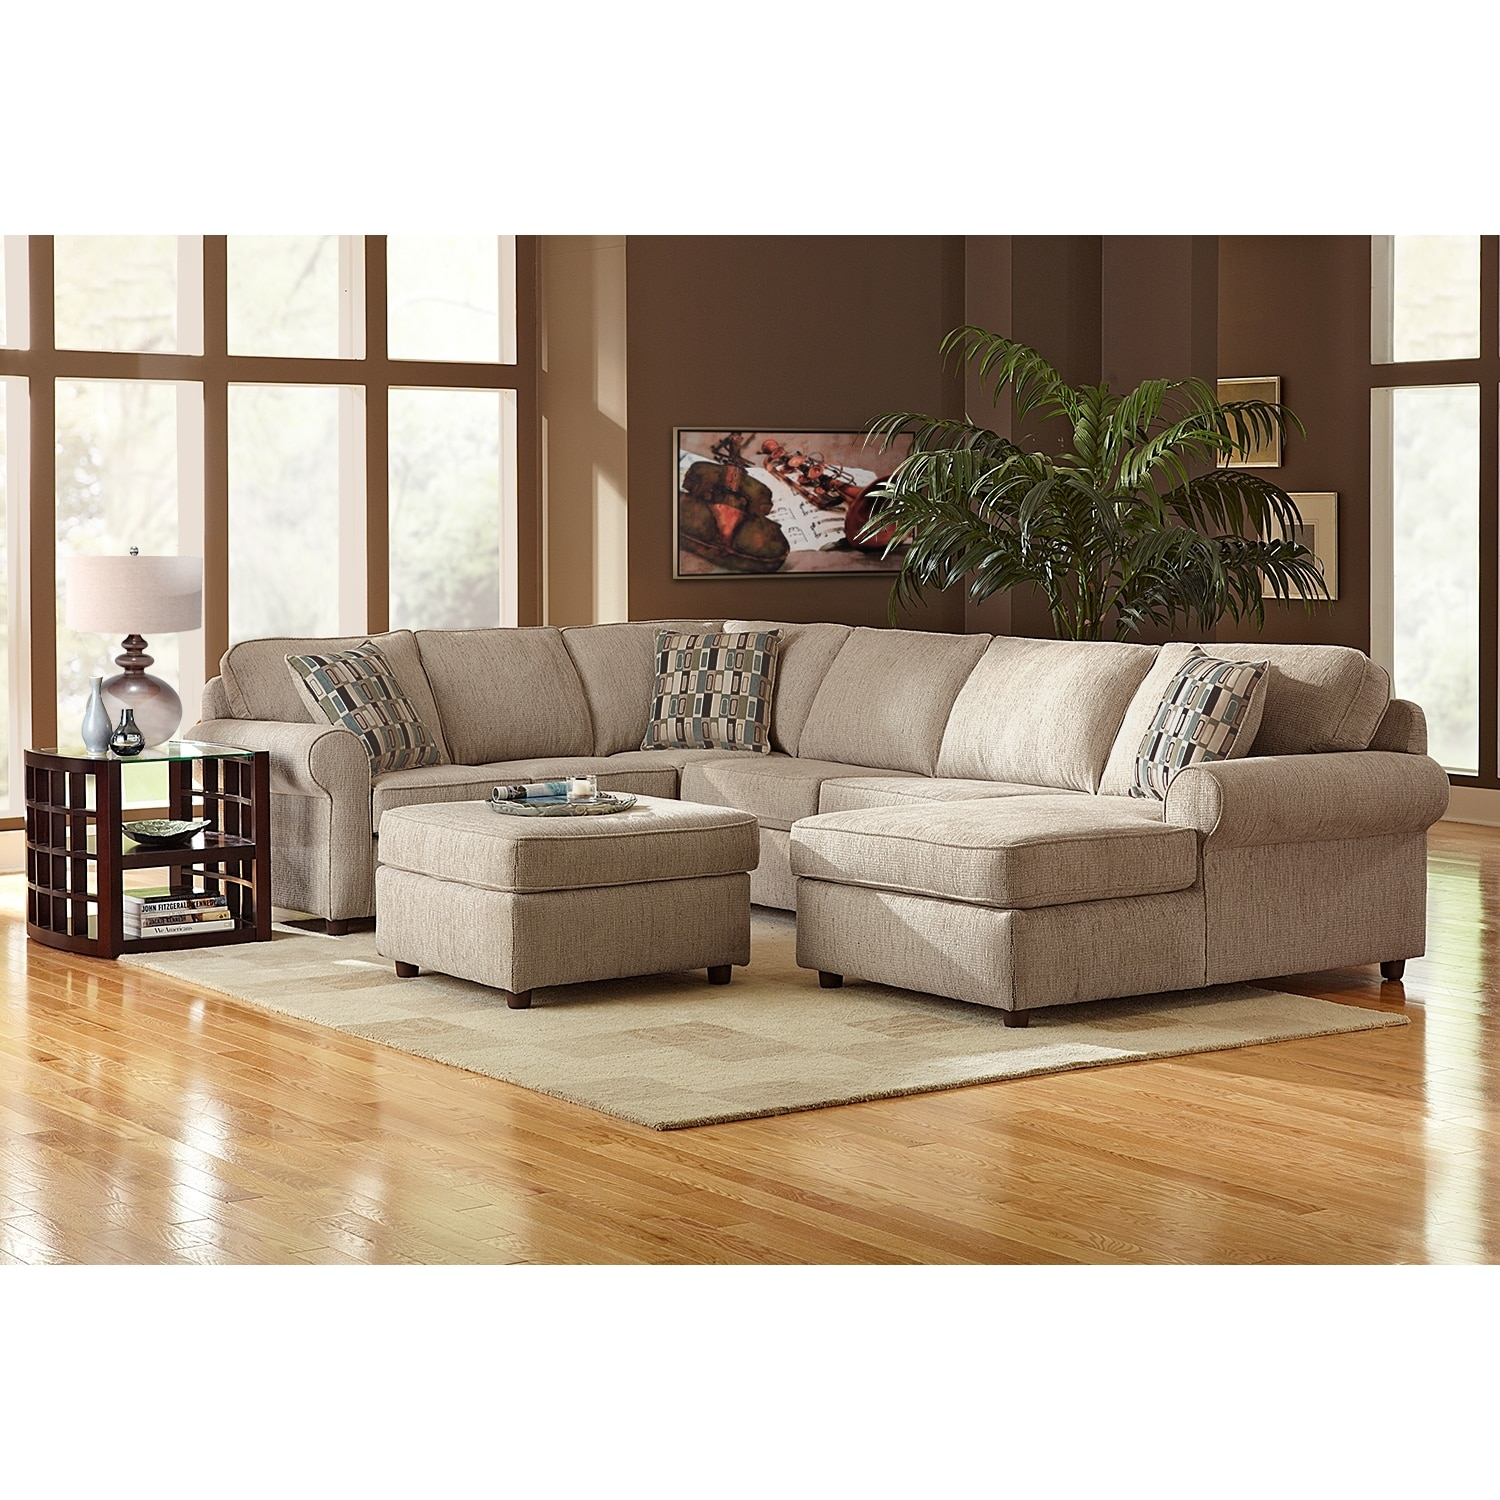 American Furniture Providence Sectional: Monarch 3-Piece Right-Facing Sectional - Taupe